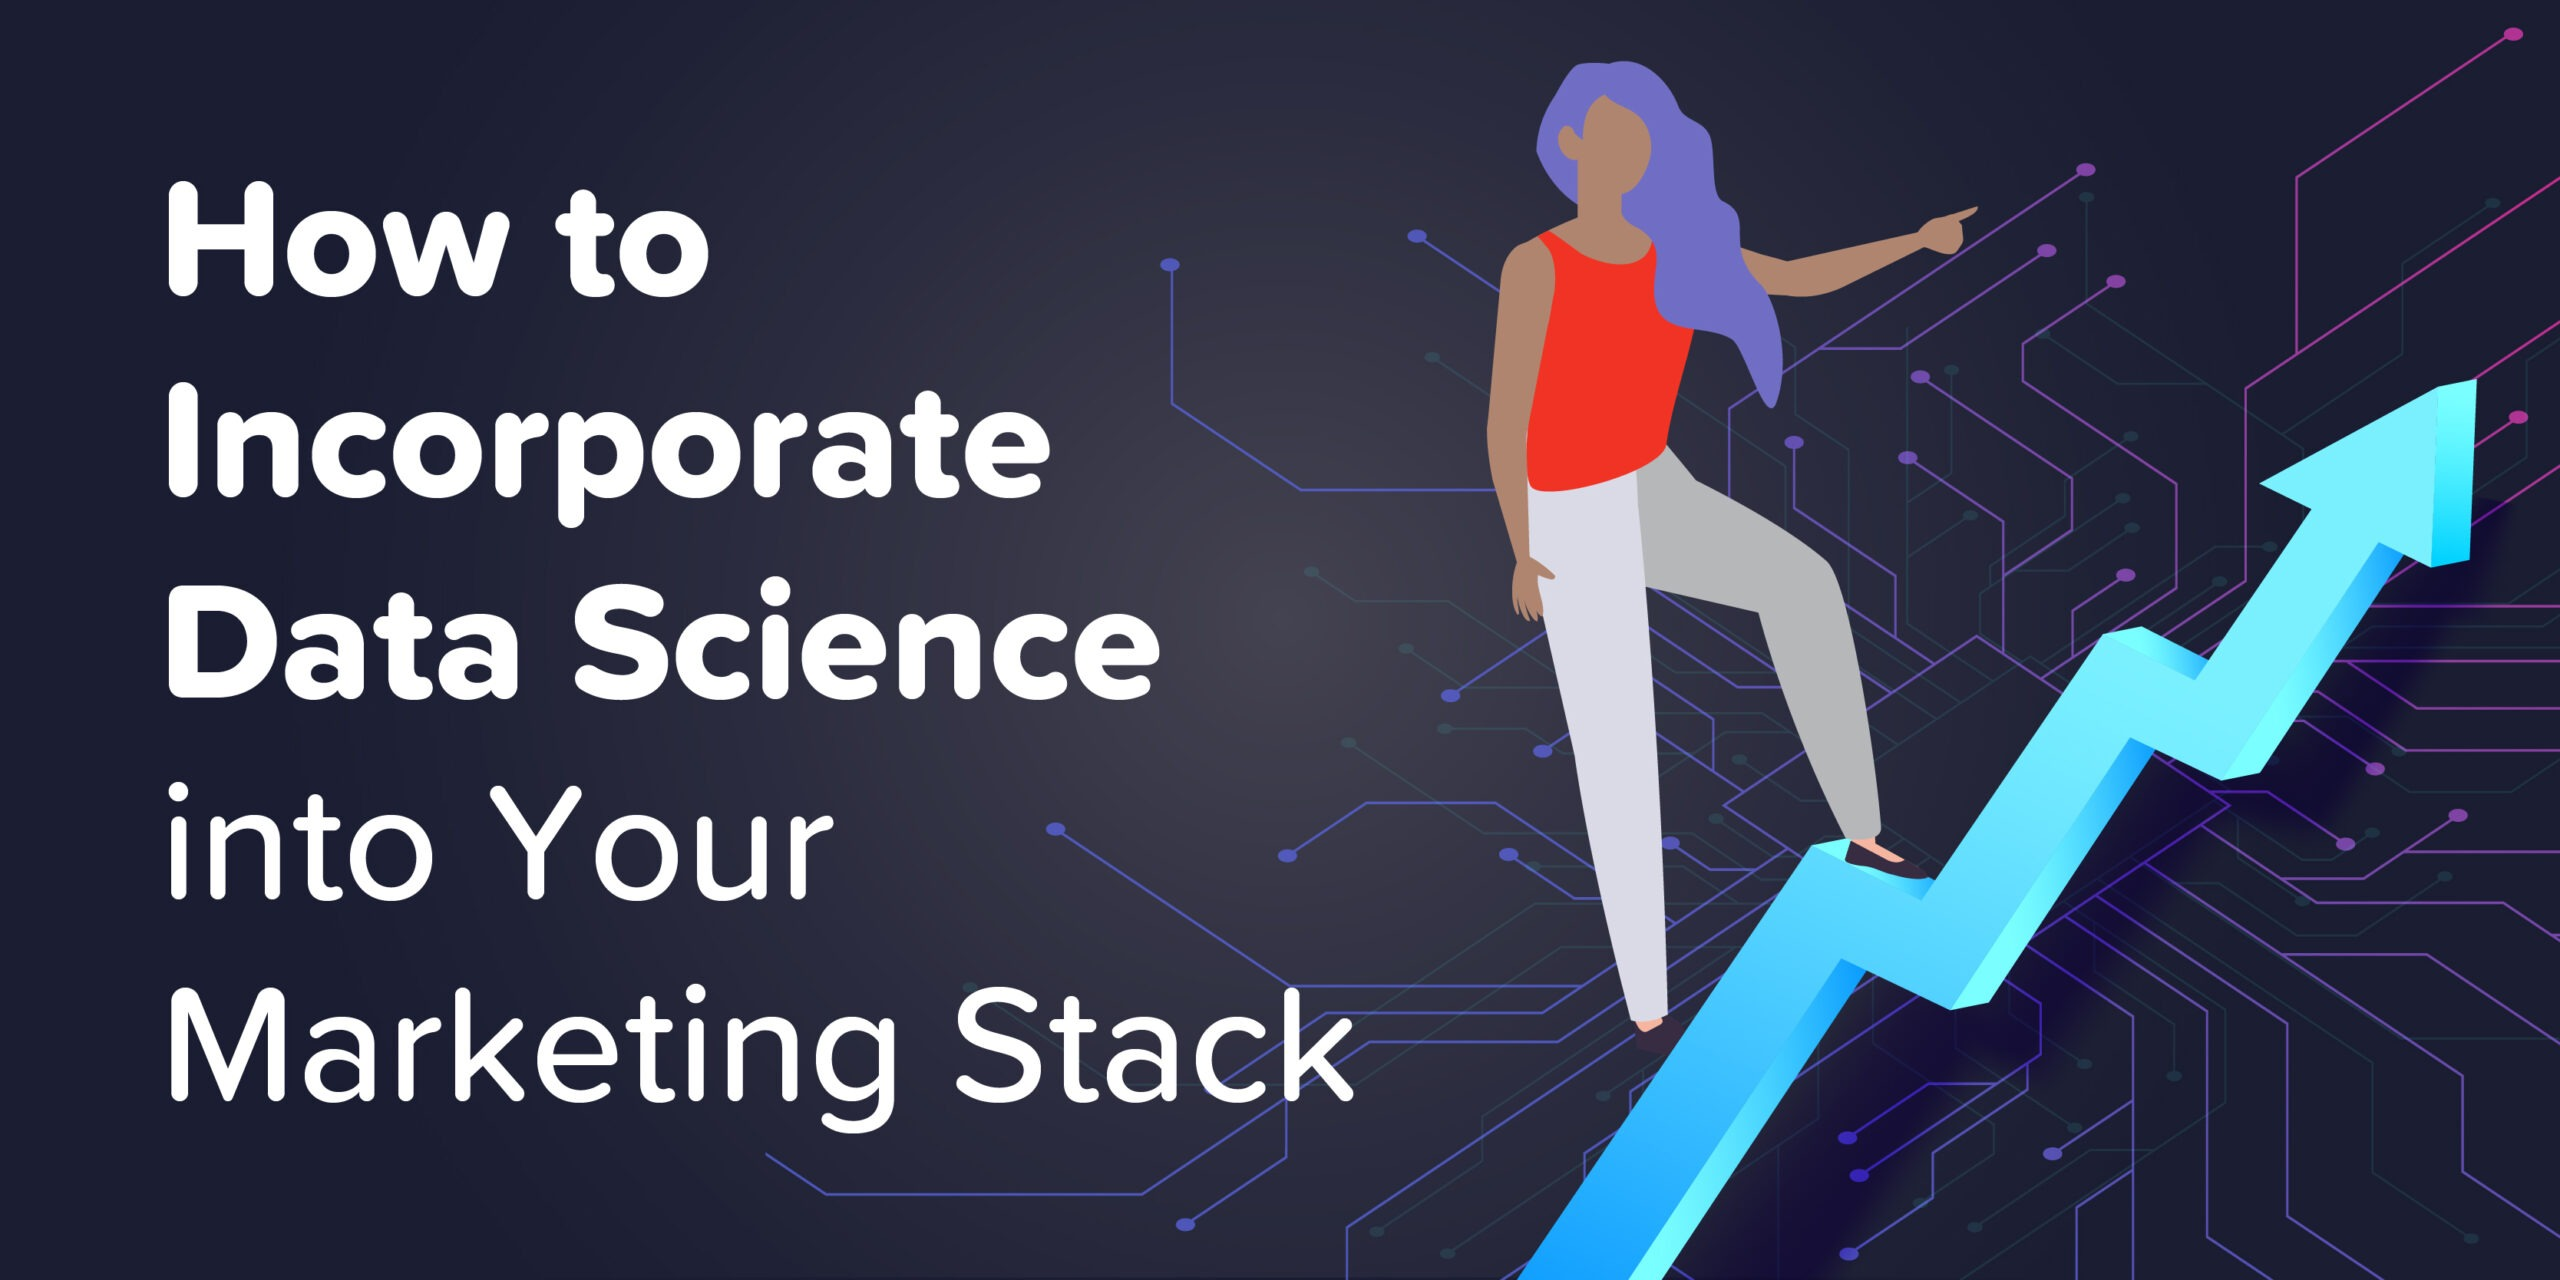 How to Incorporate Data Science Into Your Marketing Stack